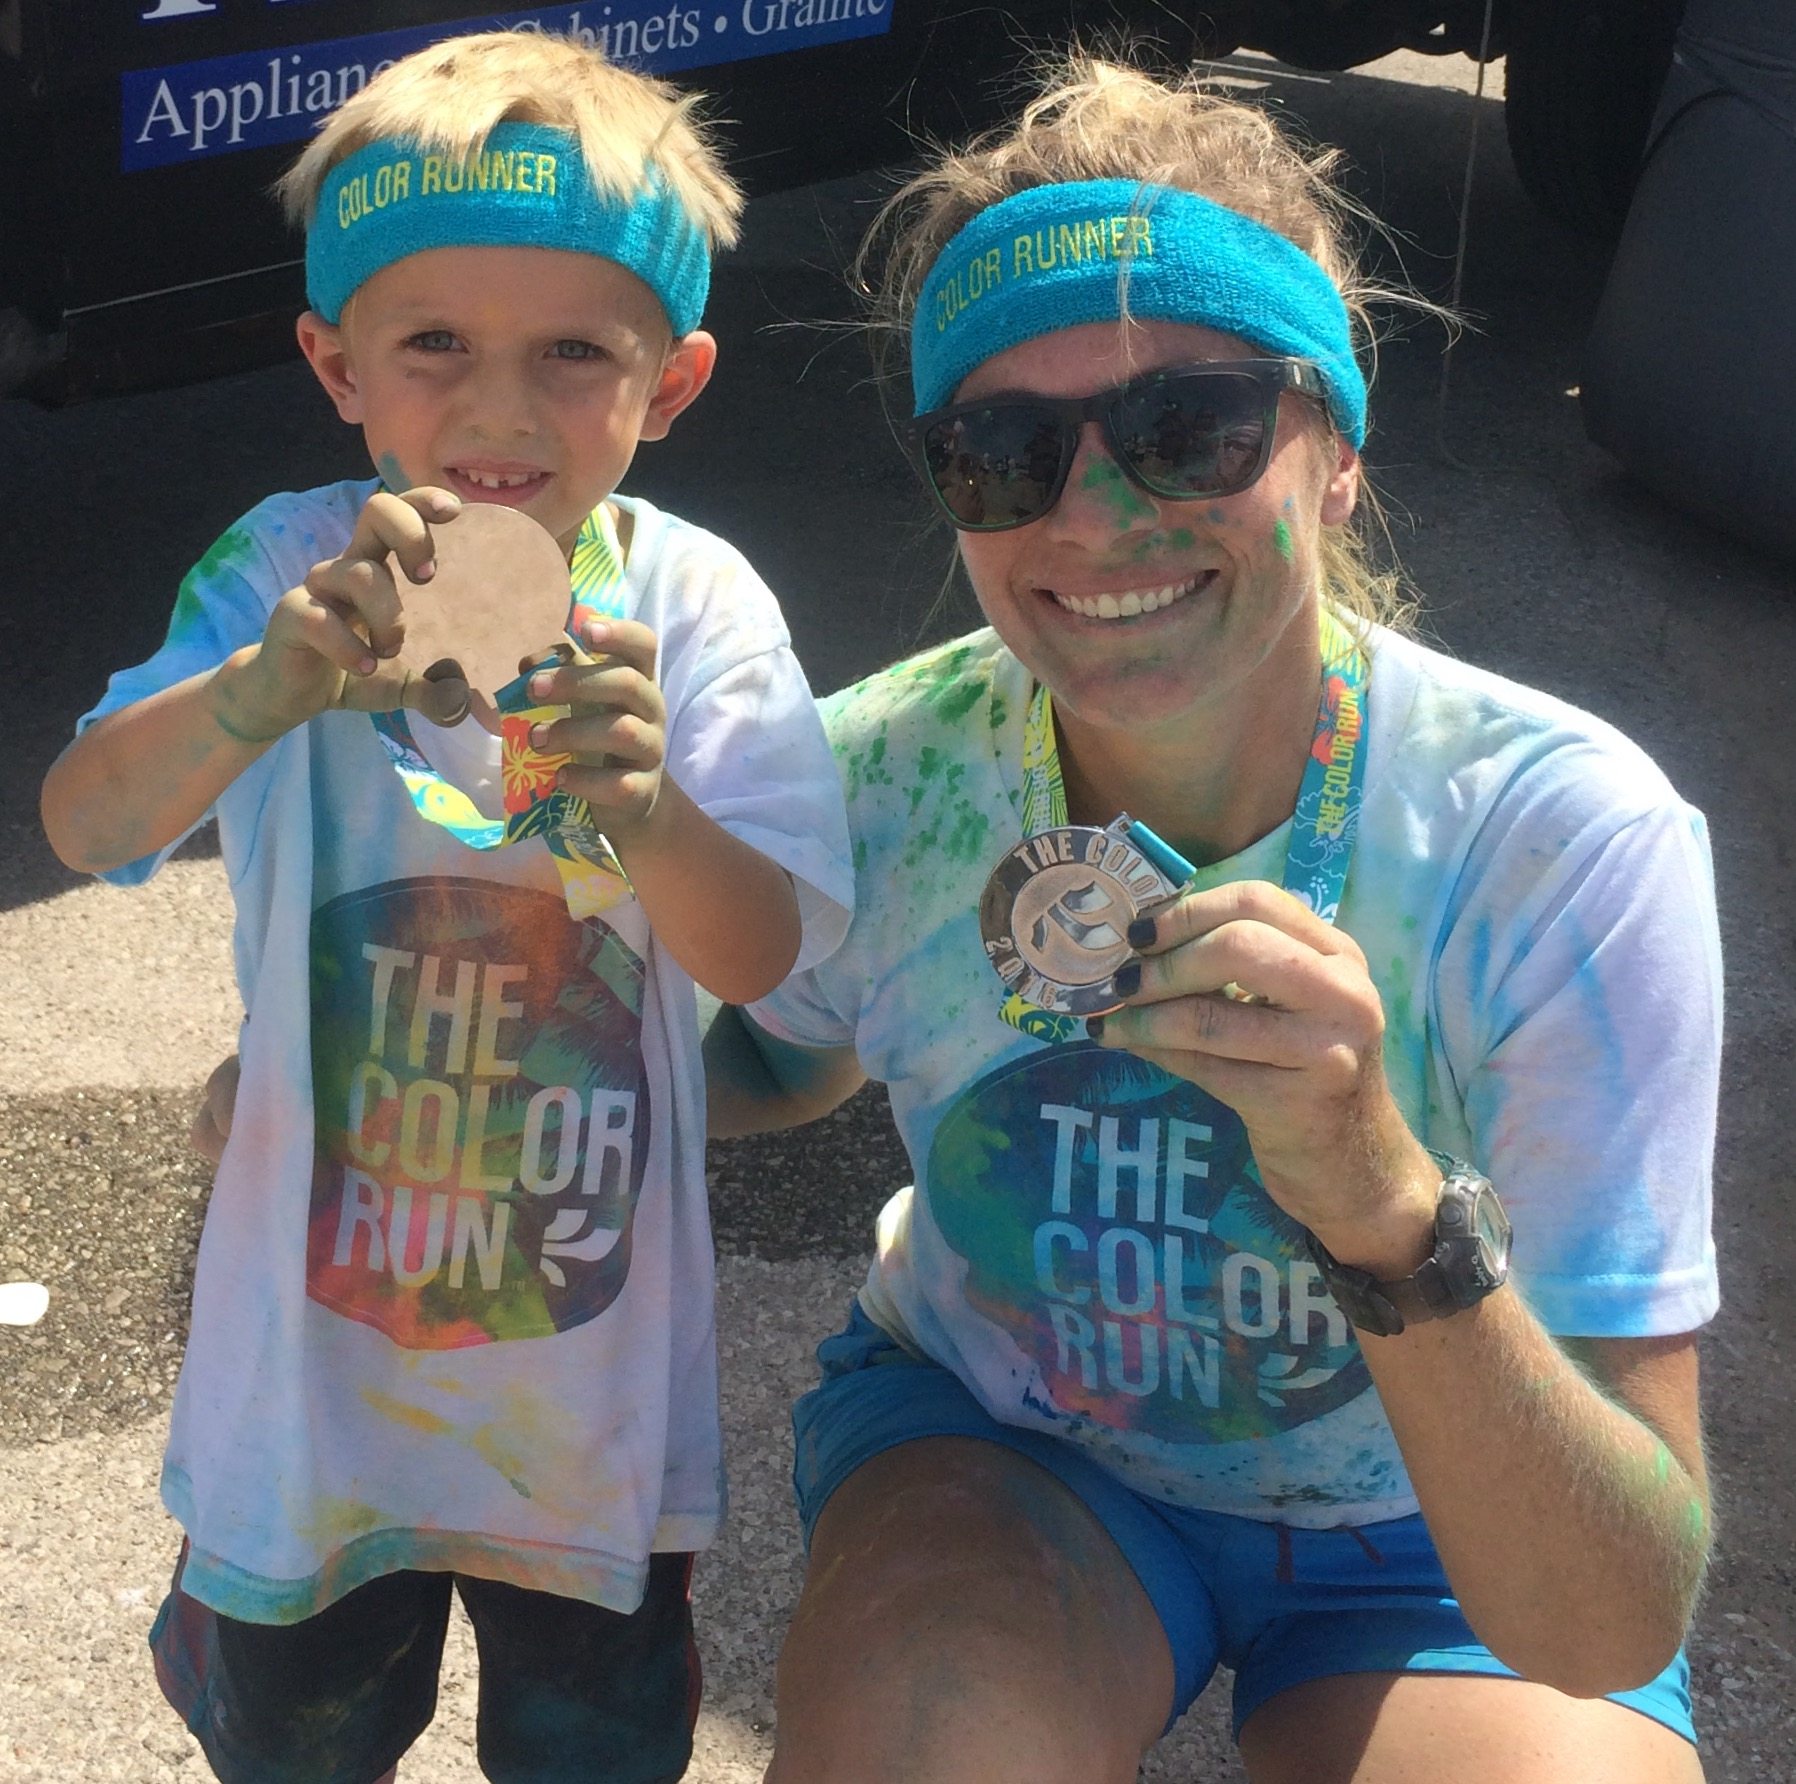 woman and young boy with medals after Color Run race